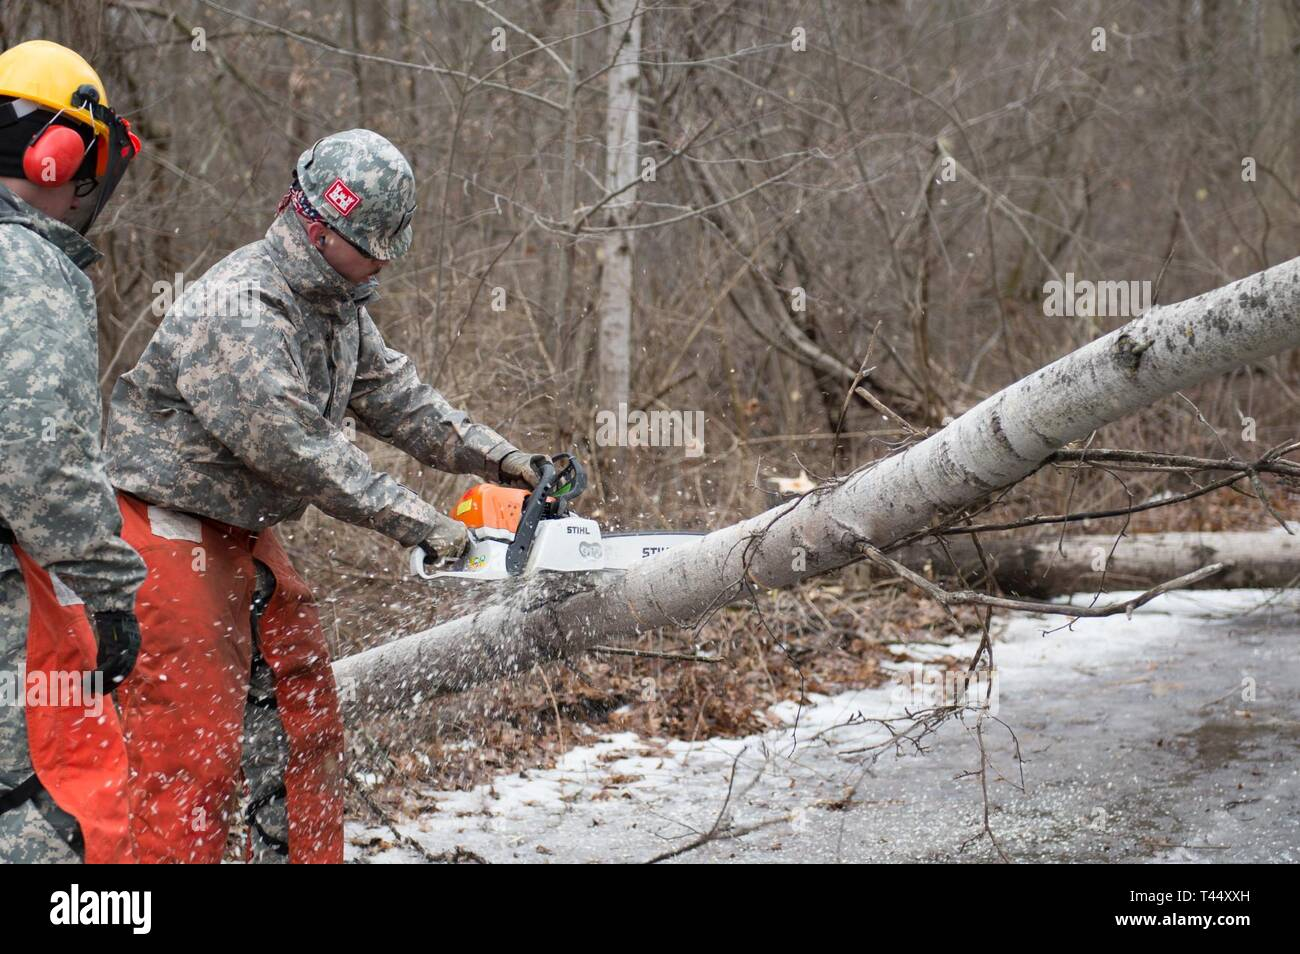 Staff Sgt. William Jolly assigned to the 21st Detachment, 10th Area Command, New York Guard, Rochester, trains Soldier on chainsaw operations at Youngstown Local Training Area, Feb. 24, 2019. The training team was composed of New York Army National Guard and New York Guard Soldiers. They trained on how to use the equipment properly and safely. These Soldiers are just a few of more than 250 Soldiers and Airmen that are deployed to Western New York for debris clearing missions in support of Operation February Winter Storm. - Stock Image